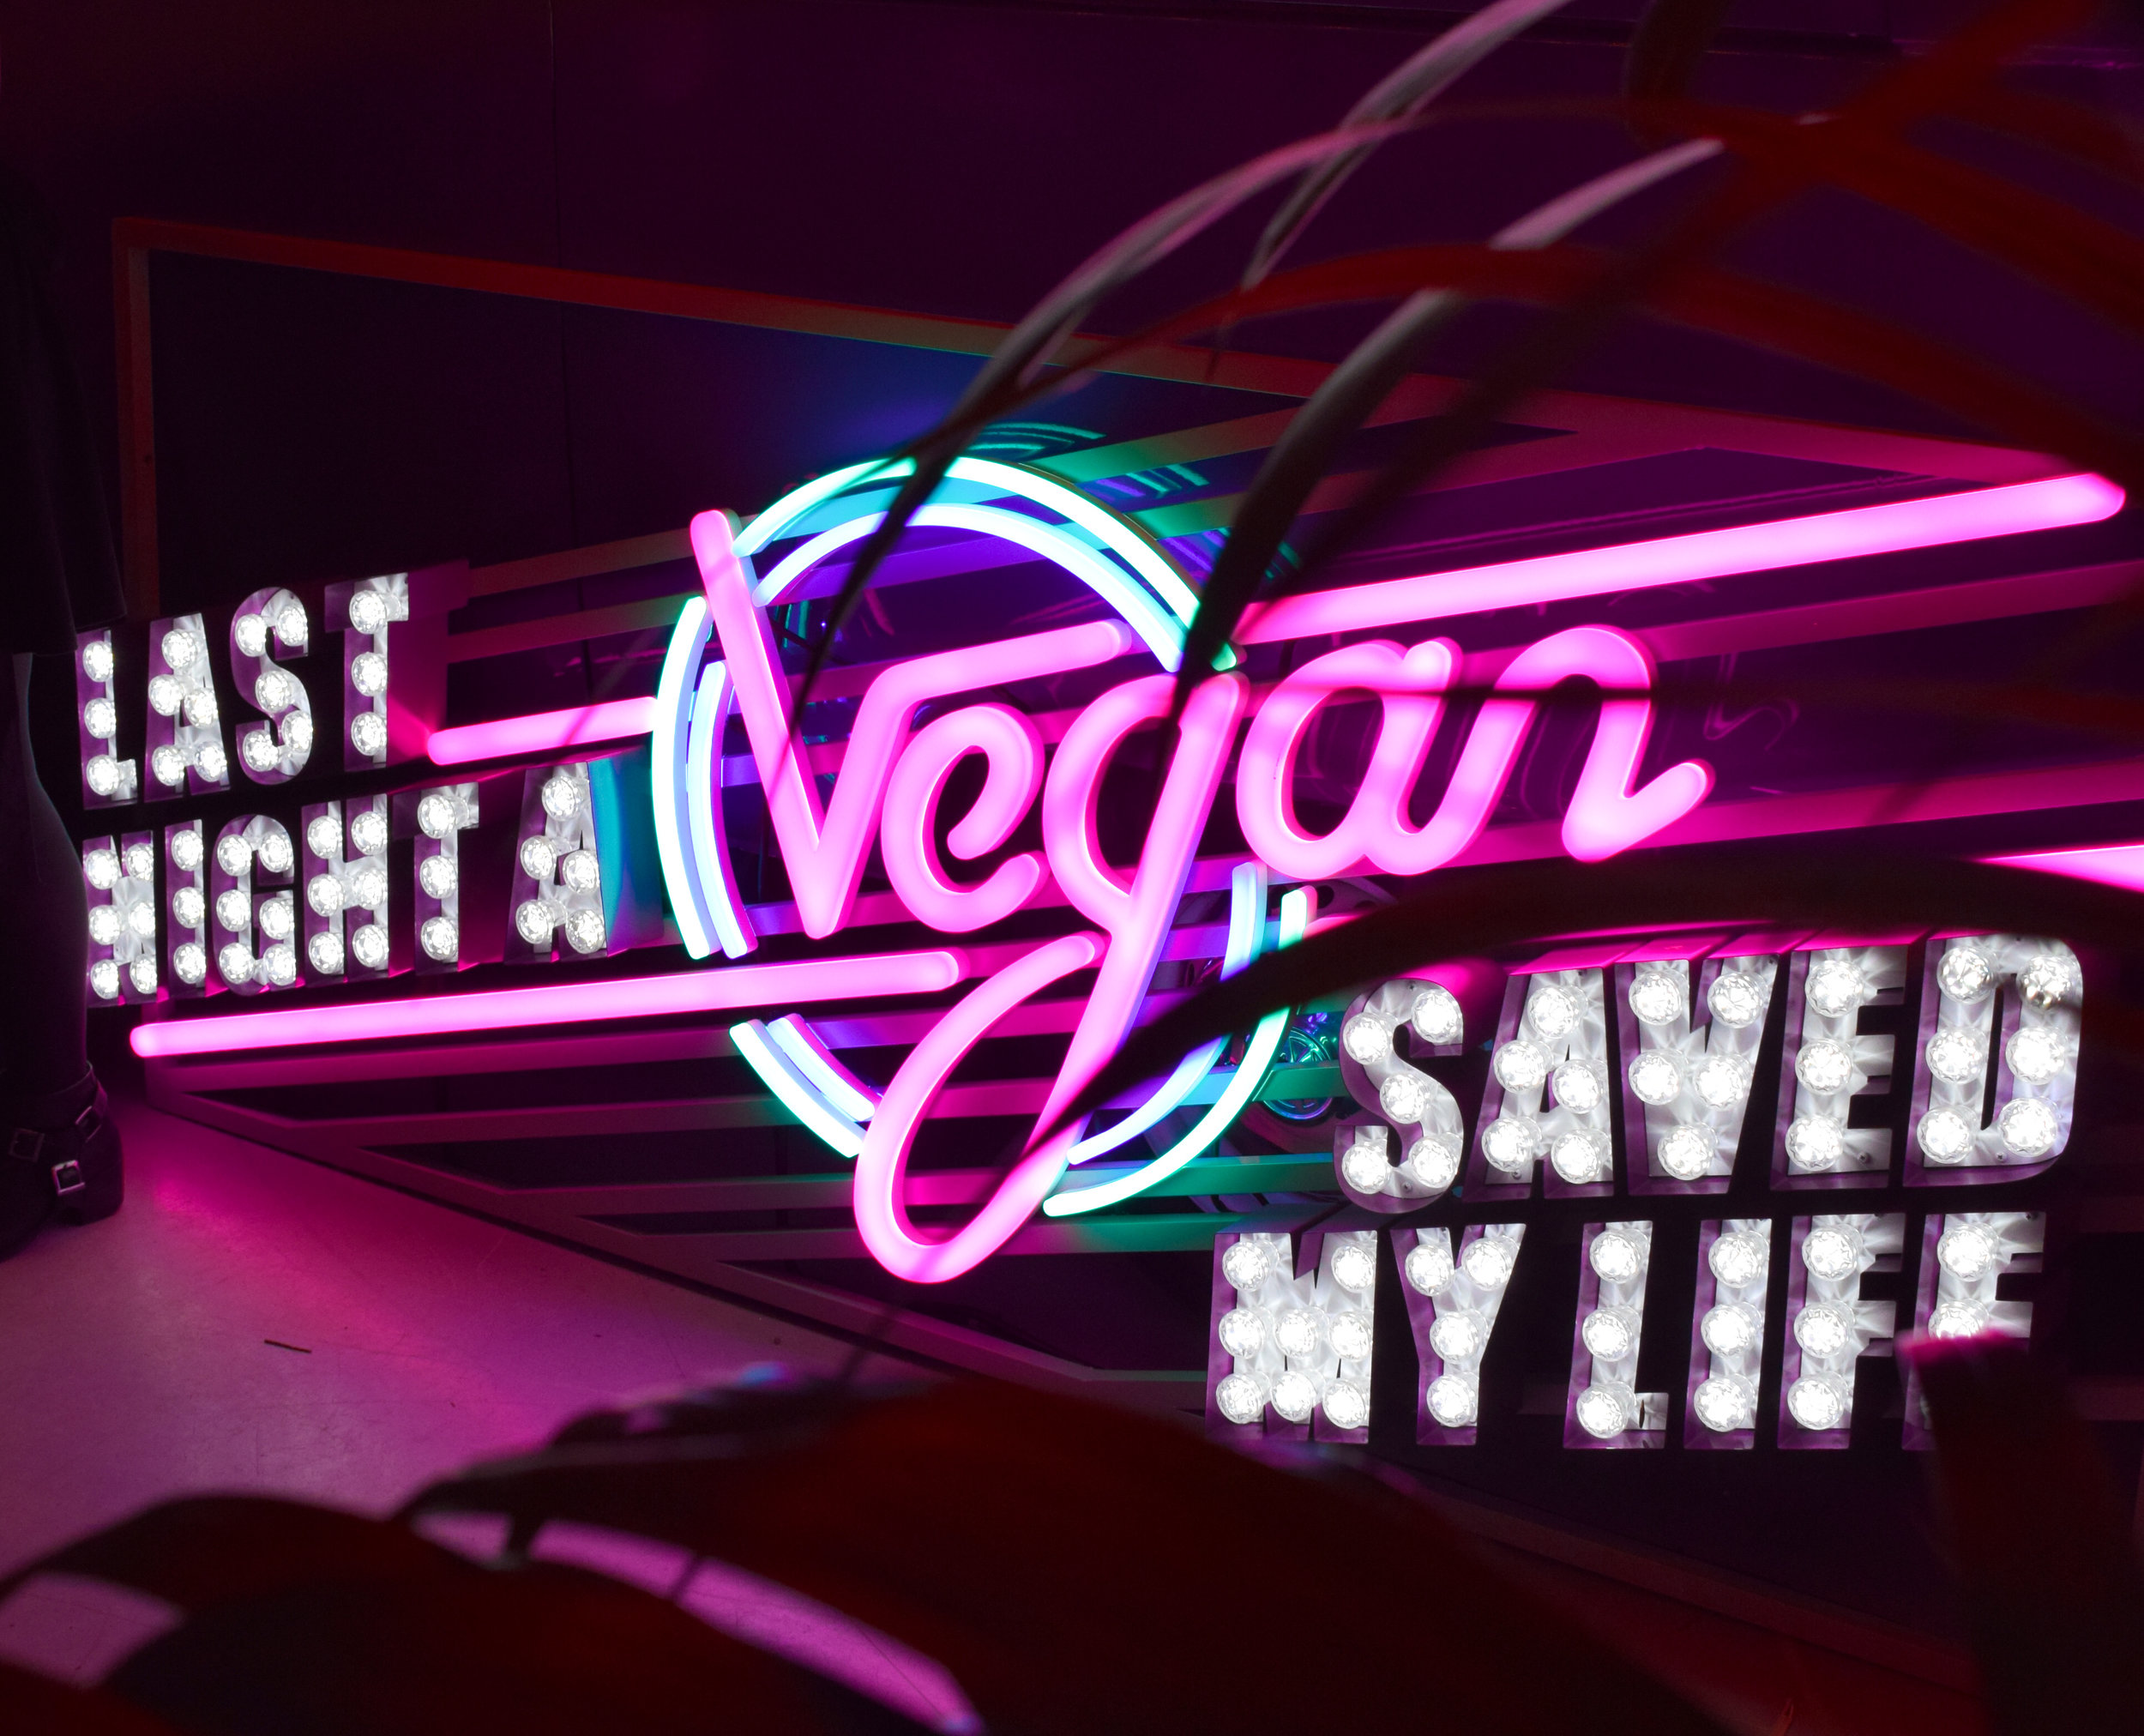 Last Night a Vegan Saved My Life neon sign - something I need in my house!